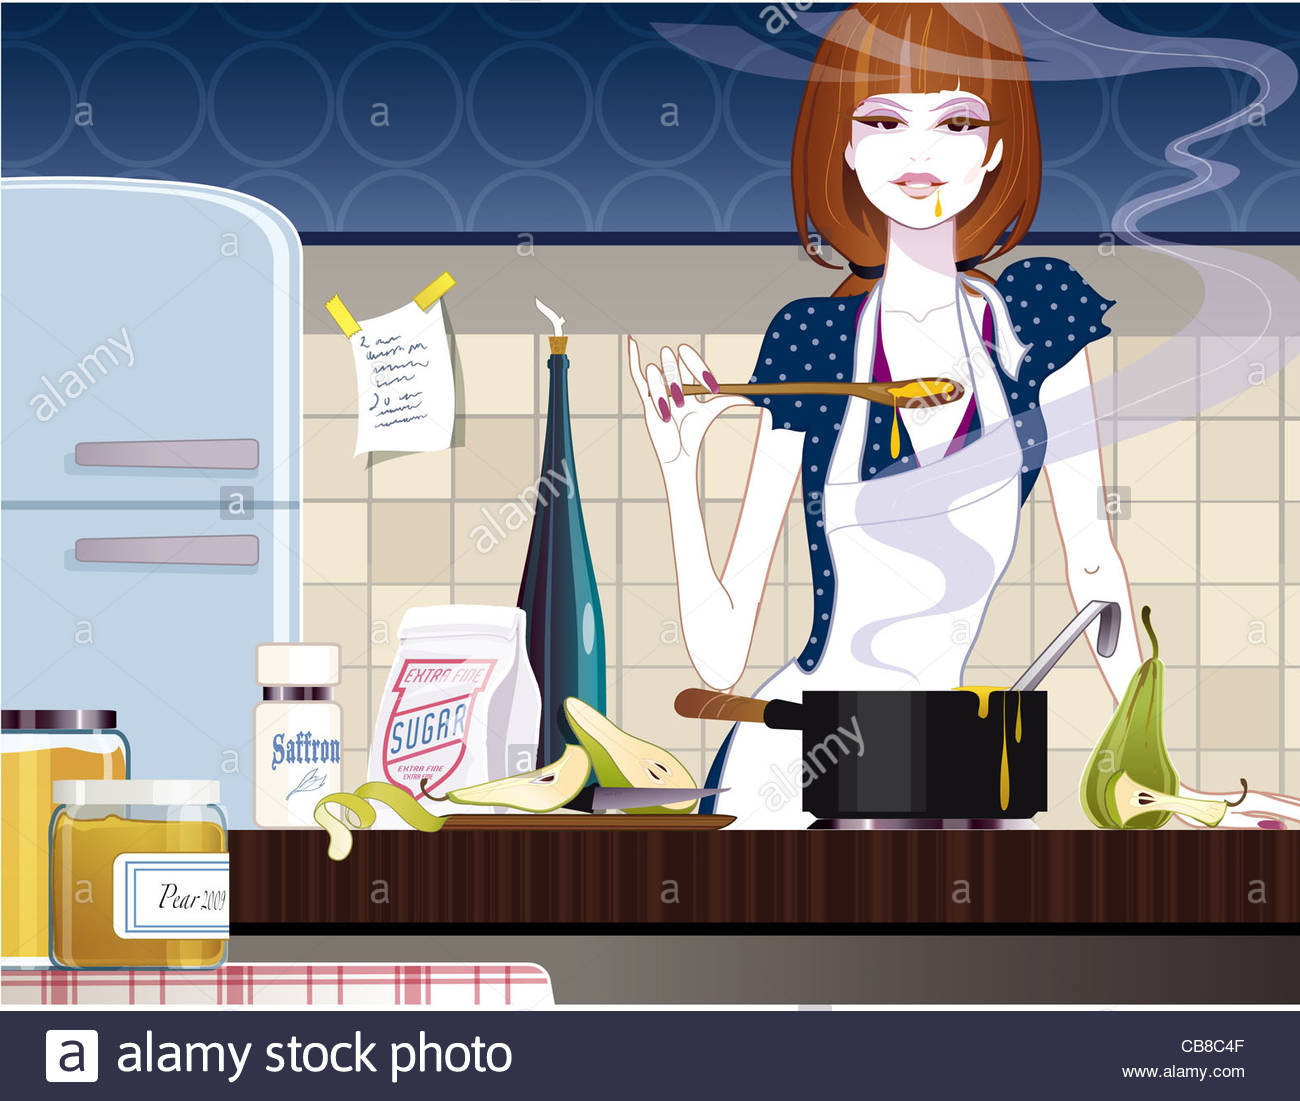 Selection of cartoons on cooking kitchens food and eating - Stock Photo Jam Cooking Kitchen Woman Pears Eat Food Nutrition Ernhrung Food Food Cooki